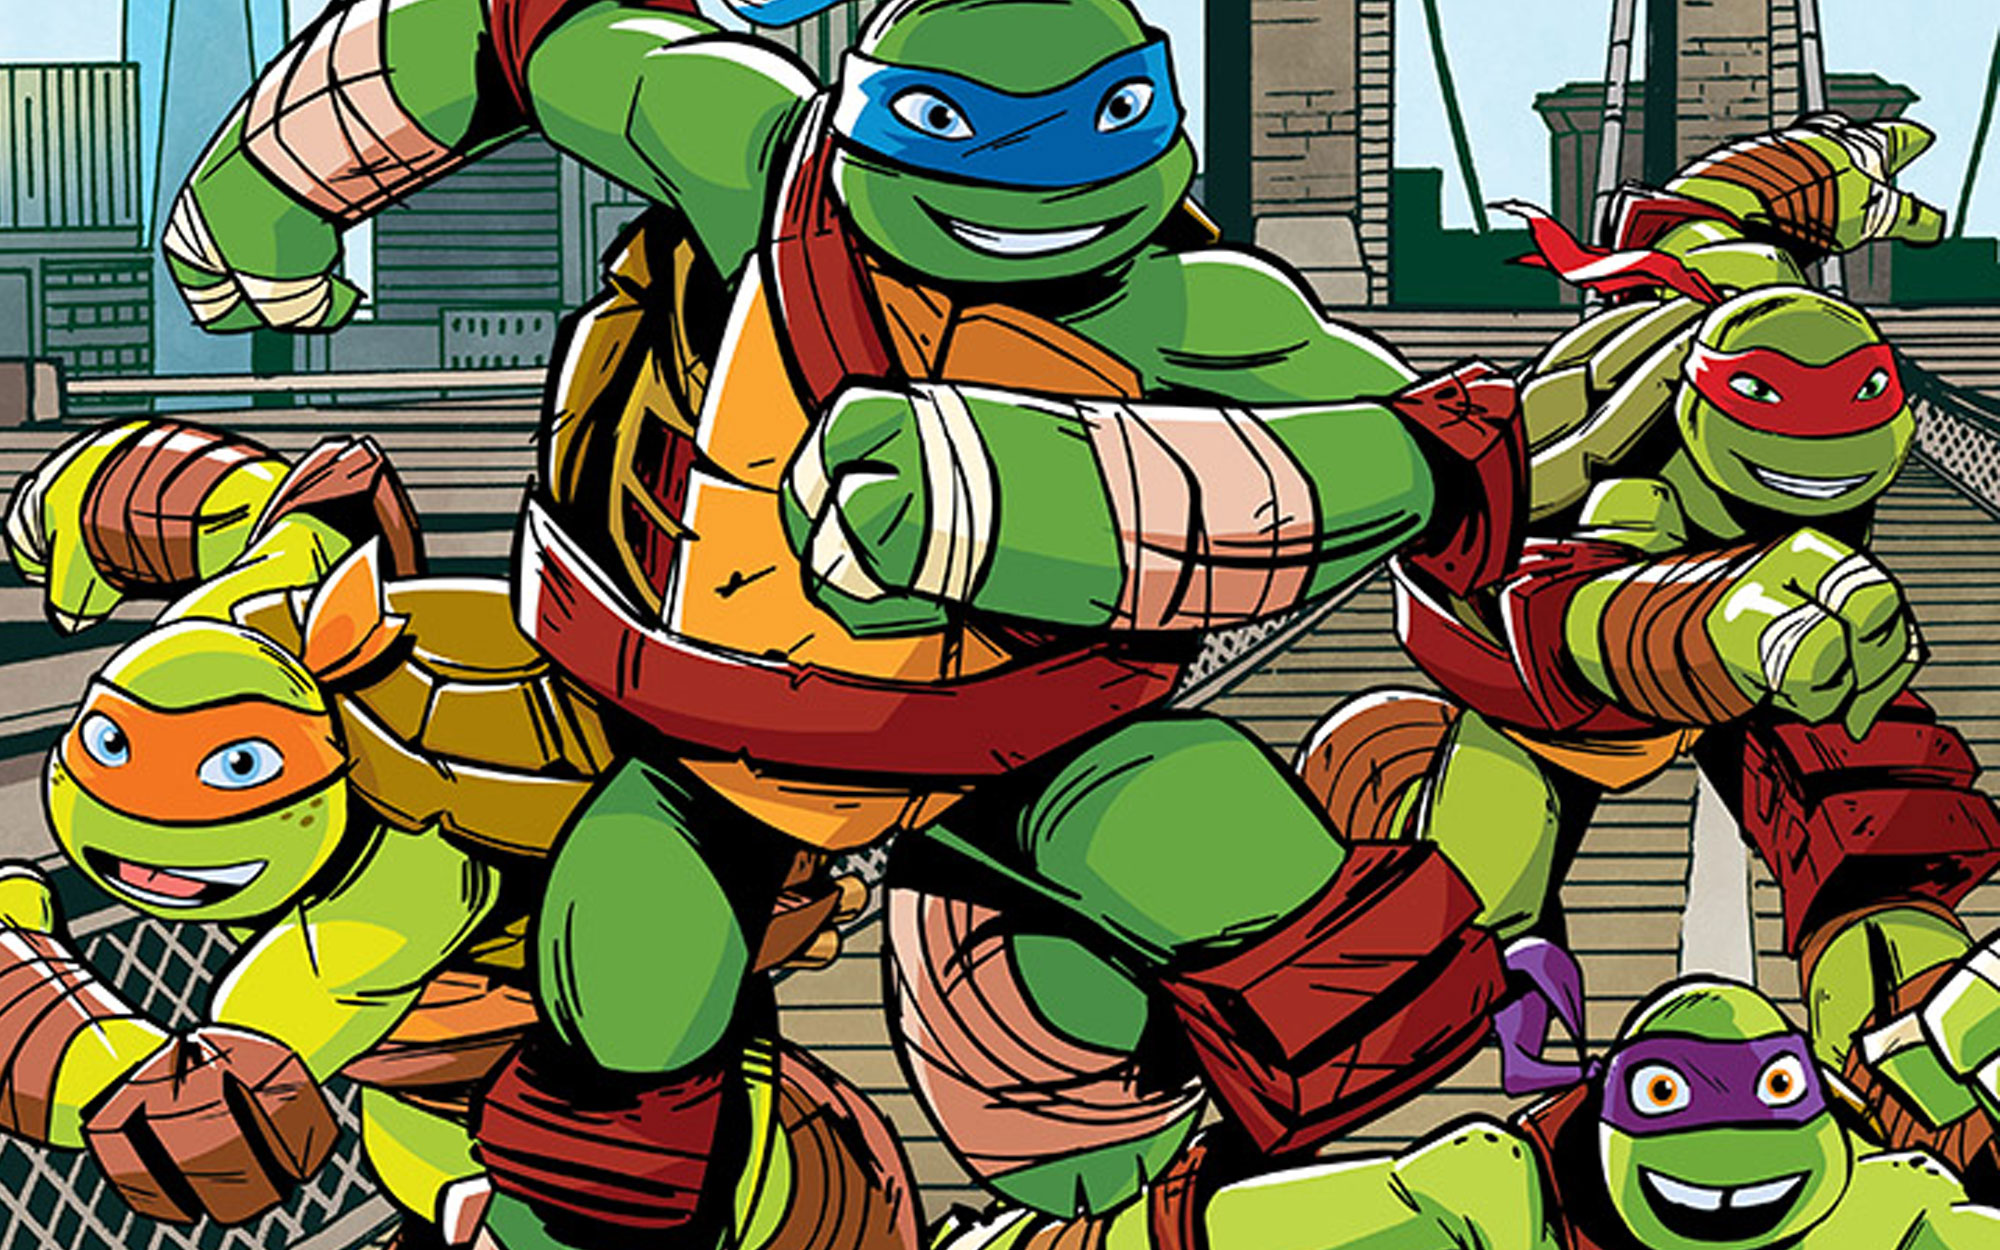 Teenage Mutant Ninja Turtles Named New York City's Ambassadors